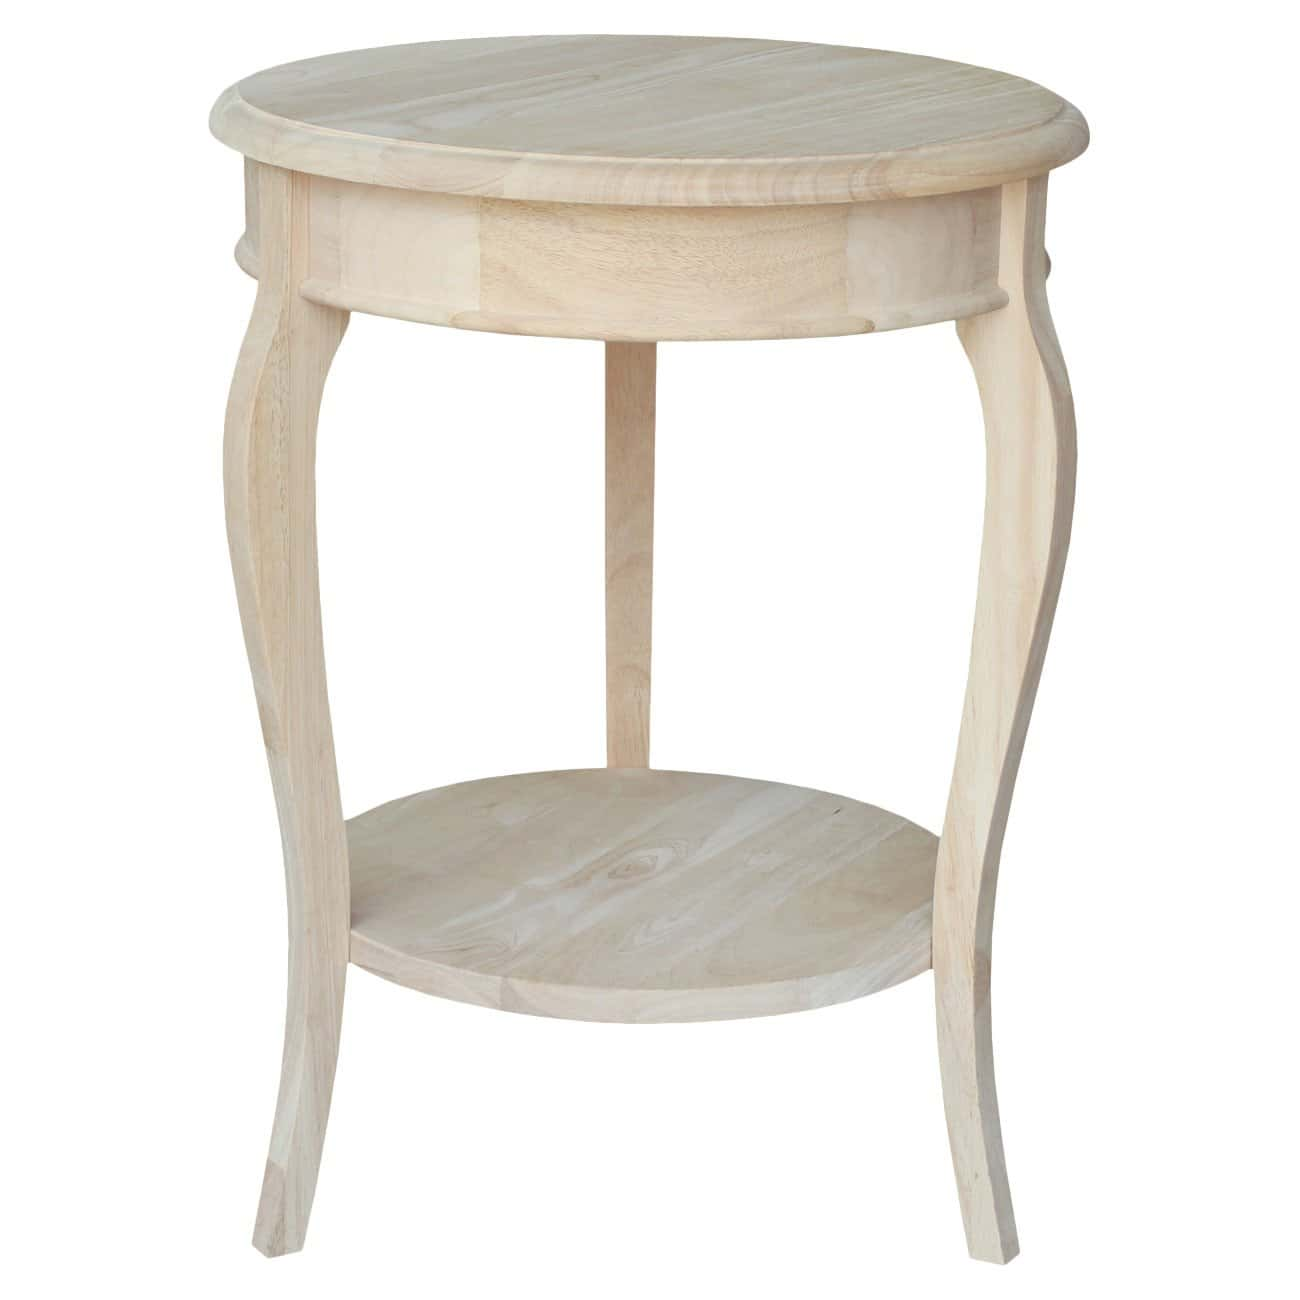 Distressed End Tables Wood Round